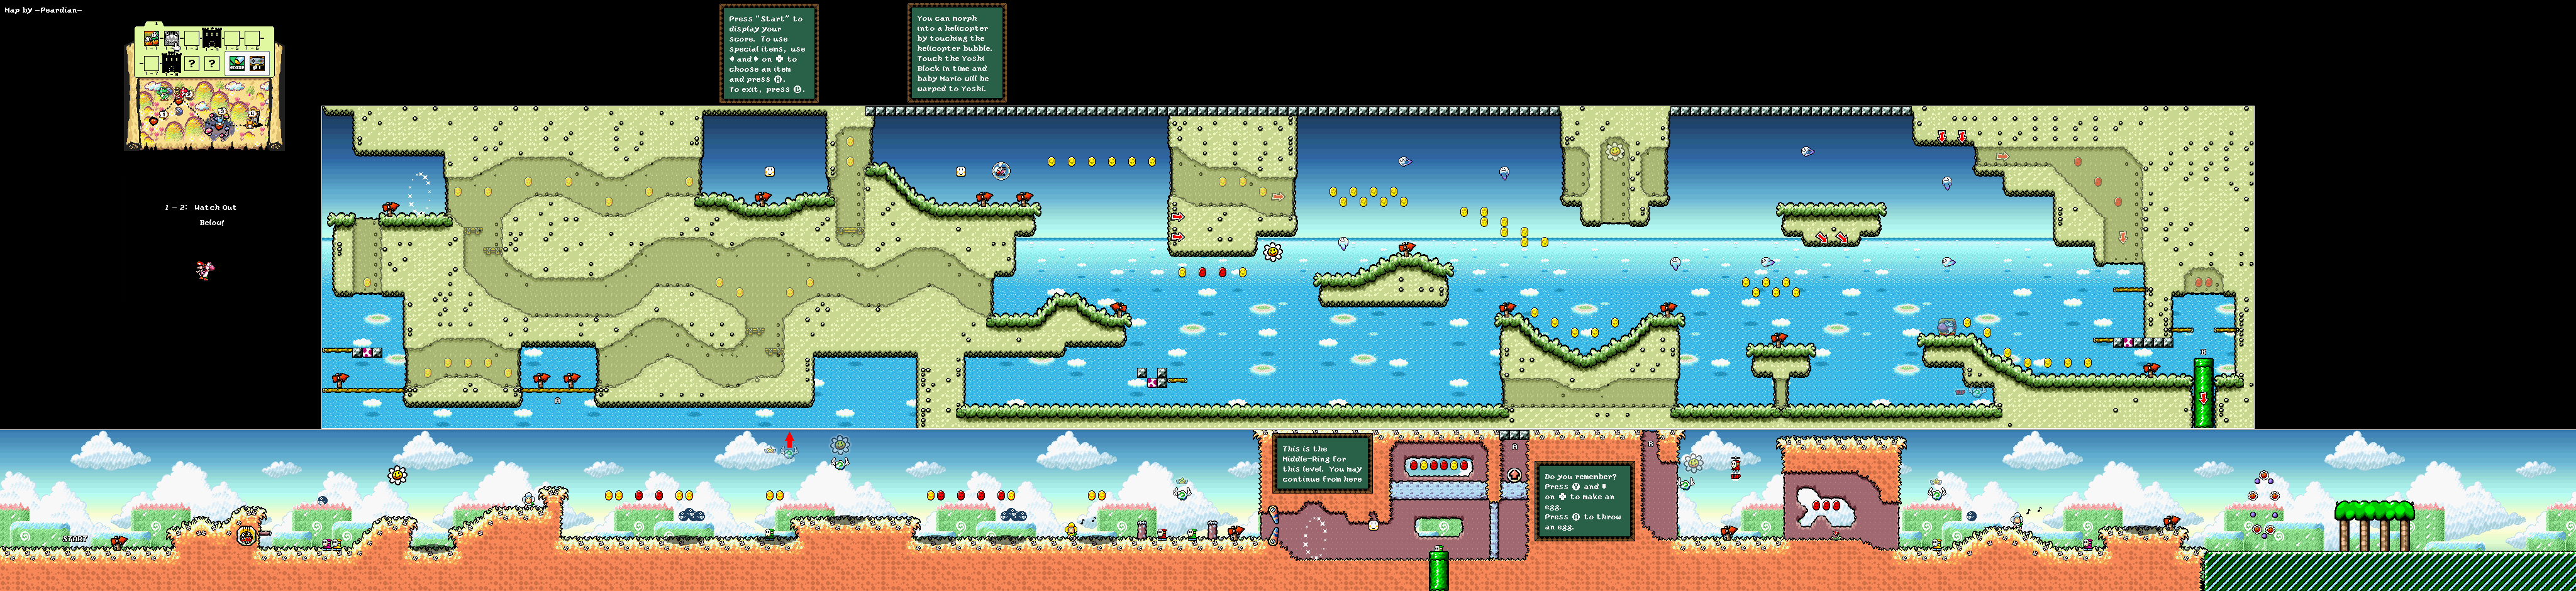 Super mario world 2 yoshis island game maps yoshis island world1 2 watchoutbelow gumiabroncs Gallery